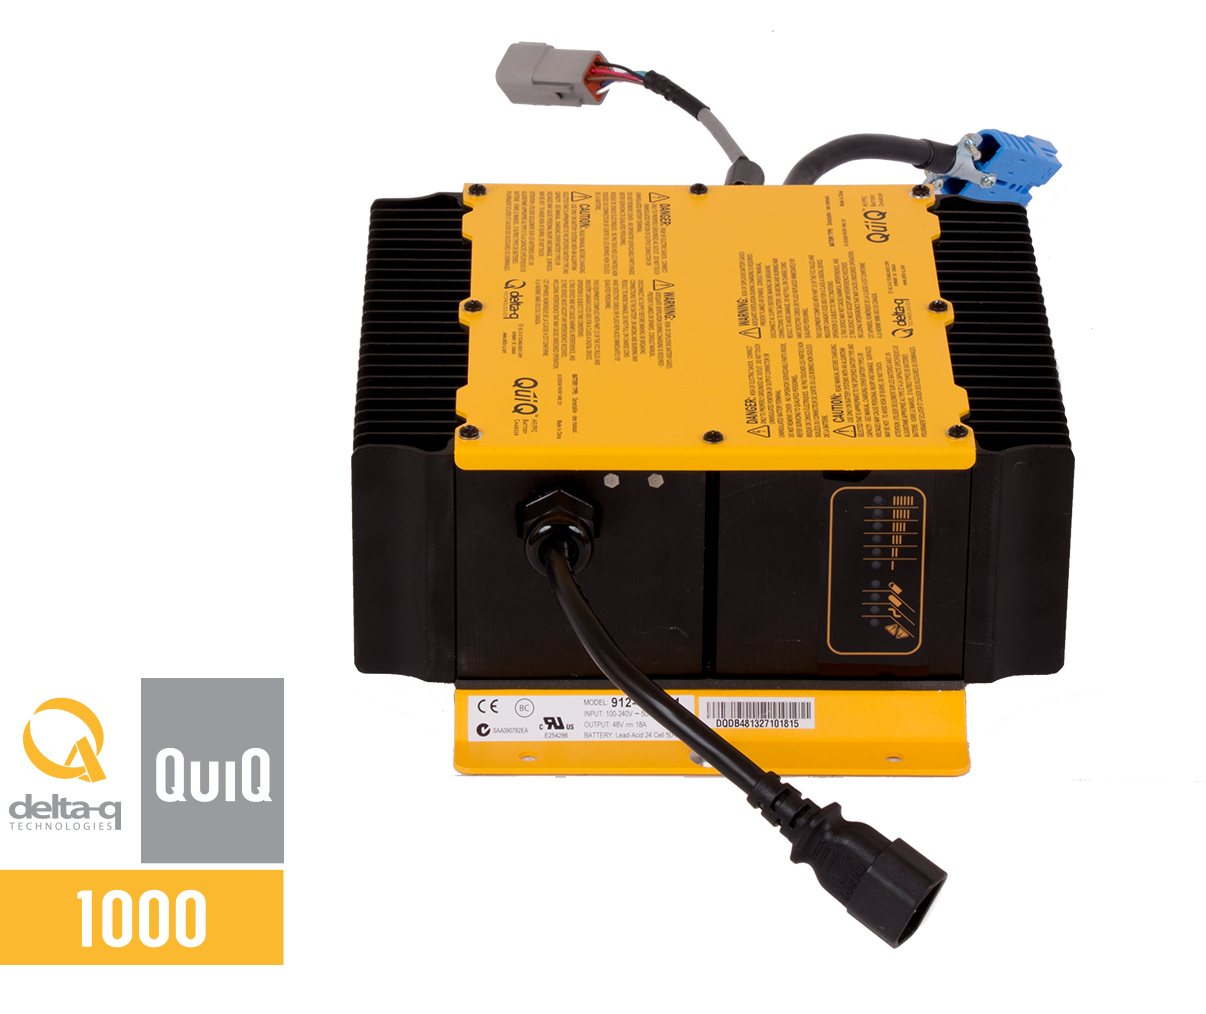 quiq 1000 industrial battery charger